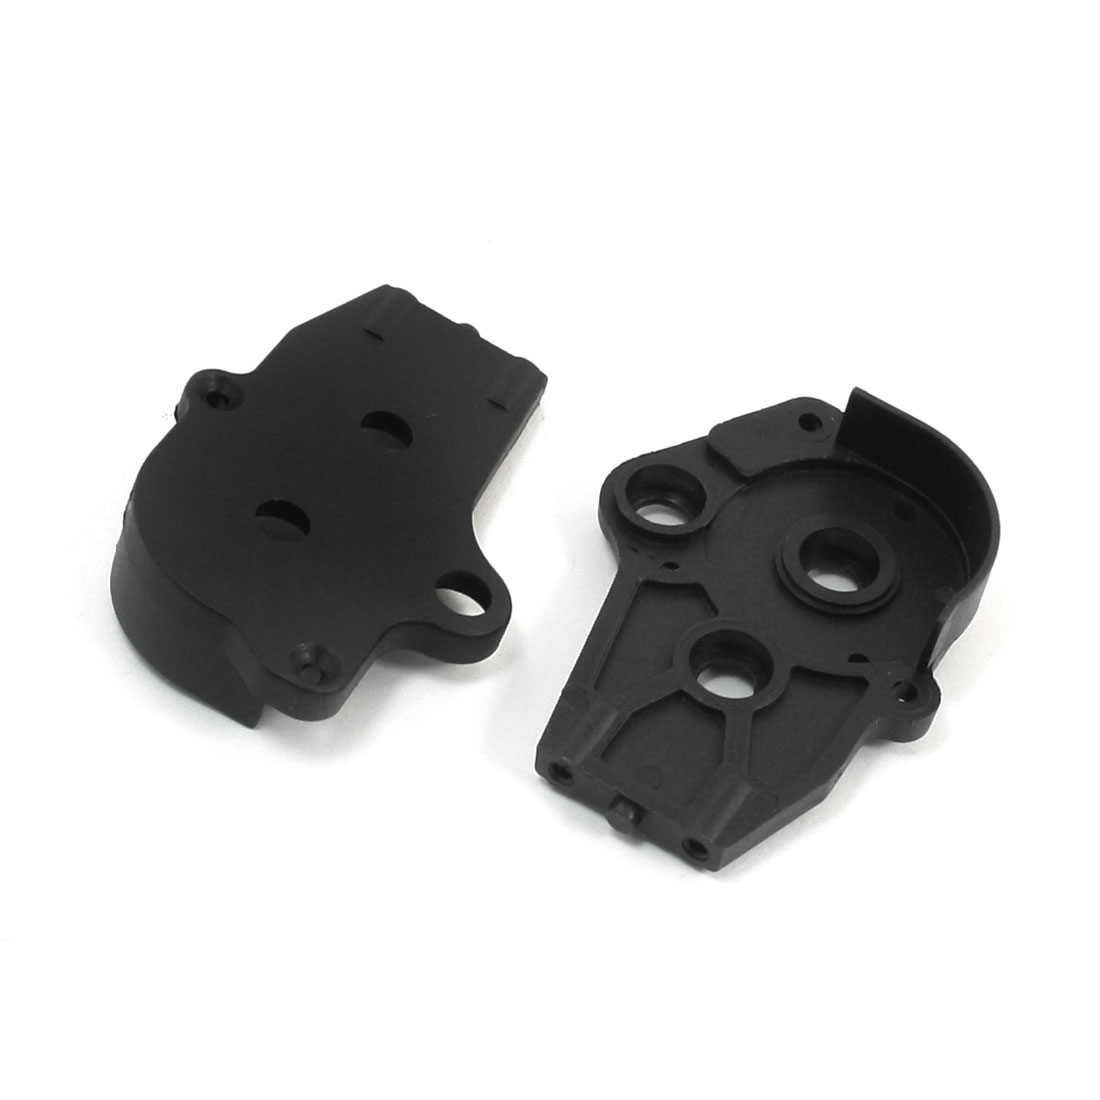 2pcs Repairing 08004 Centre Diff. Mount for 1:10 RC Model 94188 Cars Vehicle